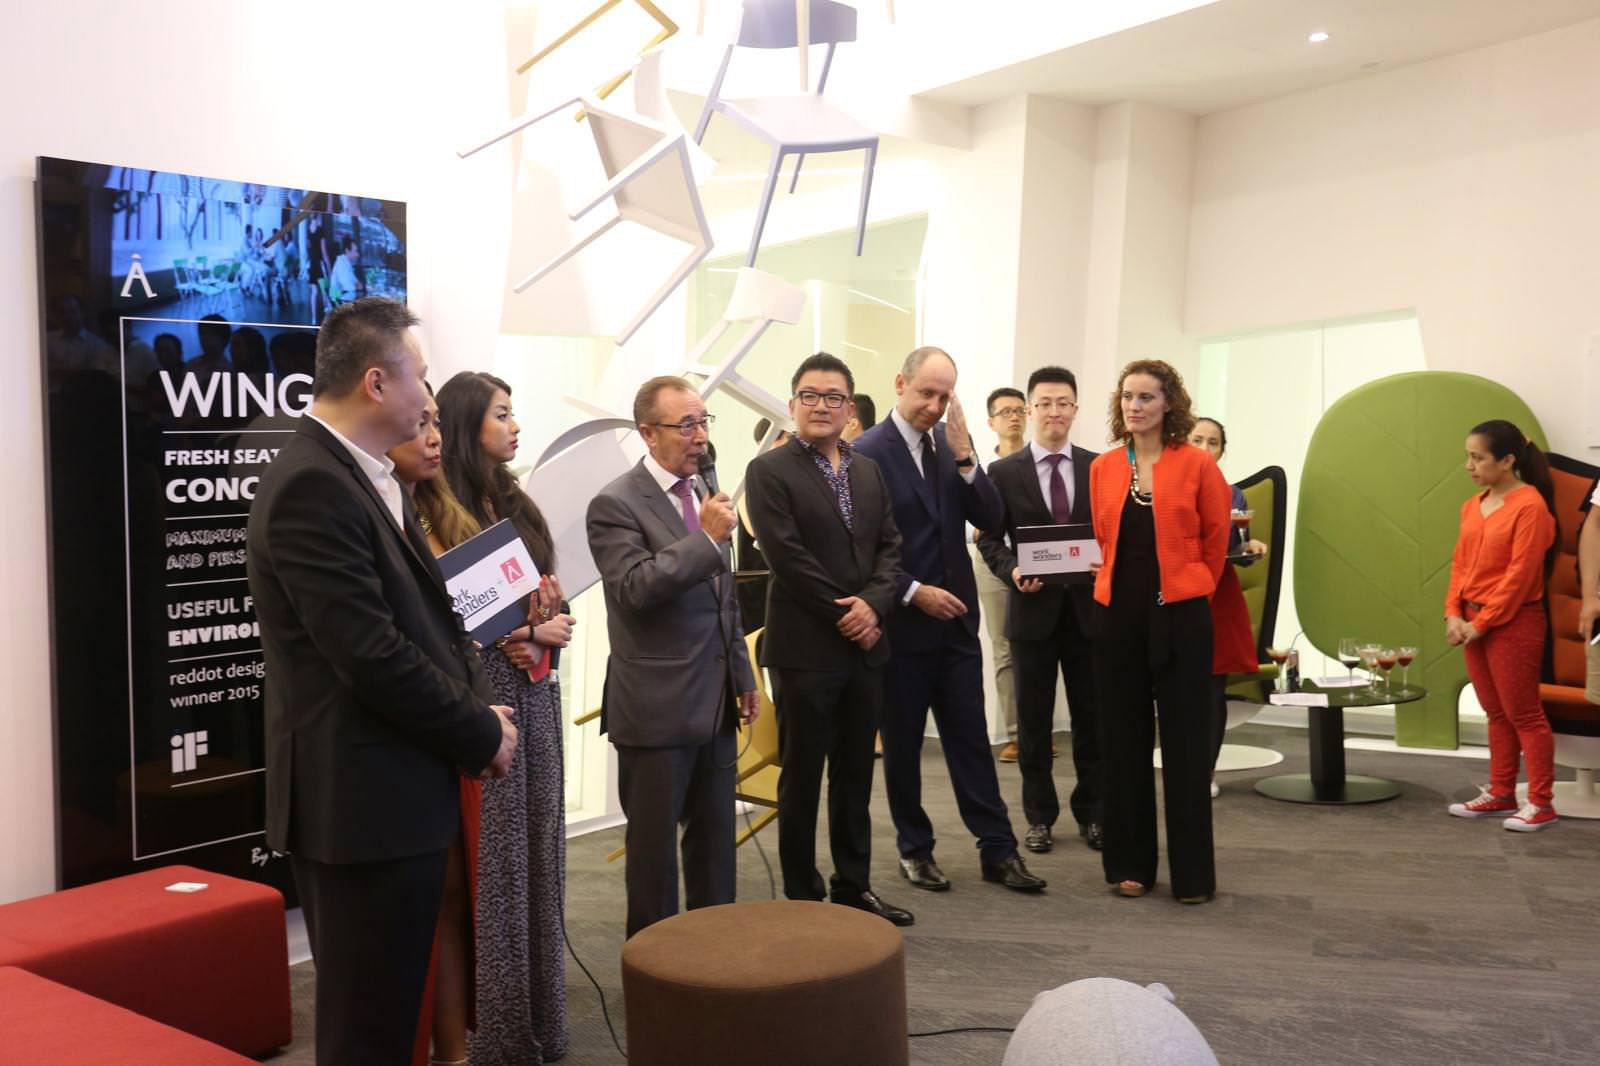 Work Wonders and Actiu join forces to walk side by side in the Chinese market 11